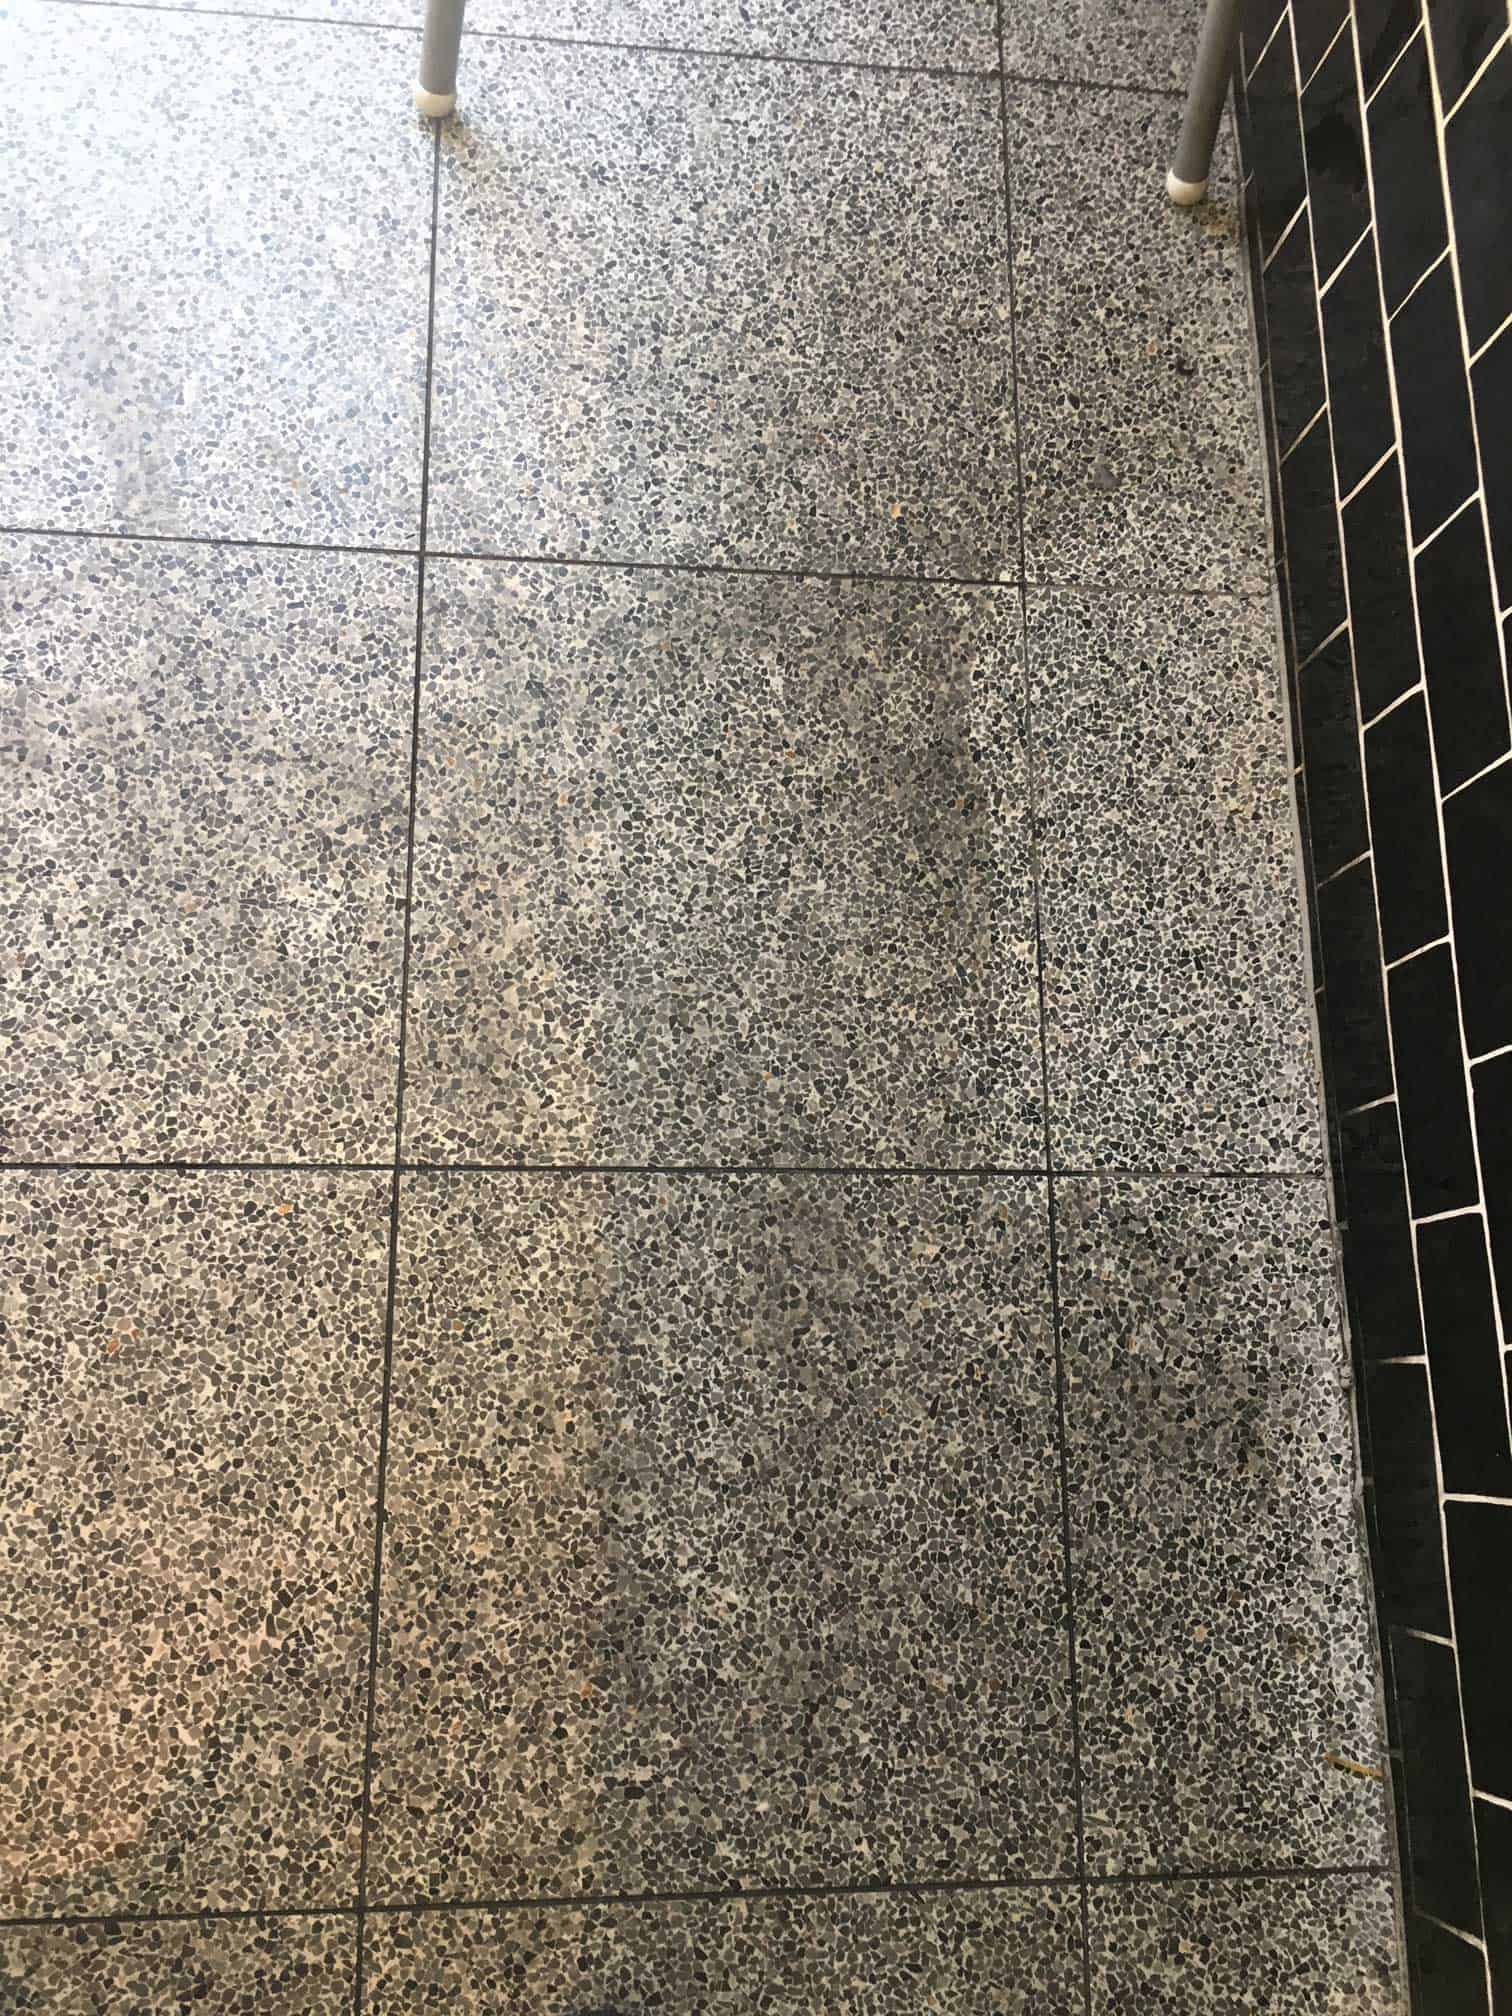 Terrazzo Cleaning Melbourne   Performance Cleaning